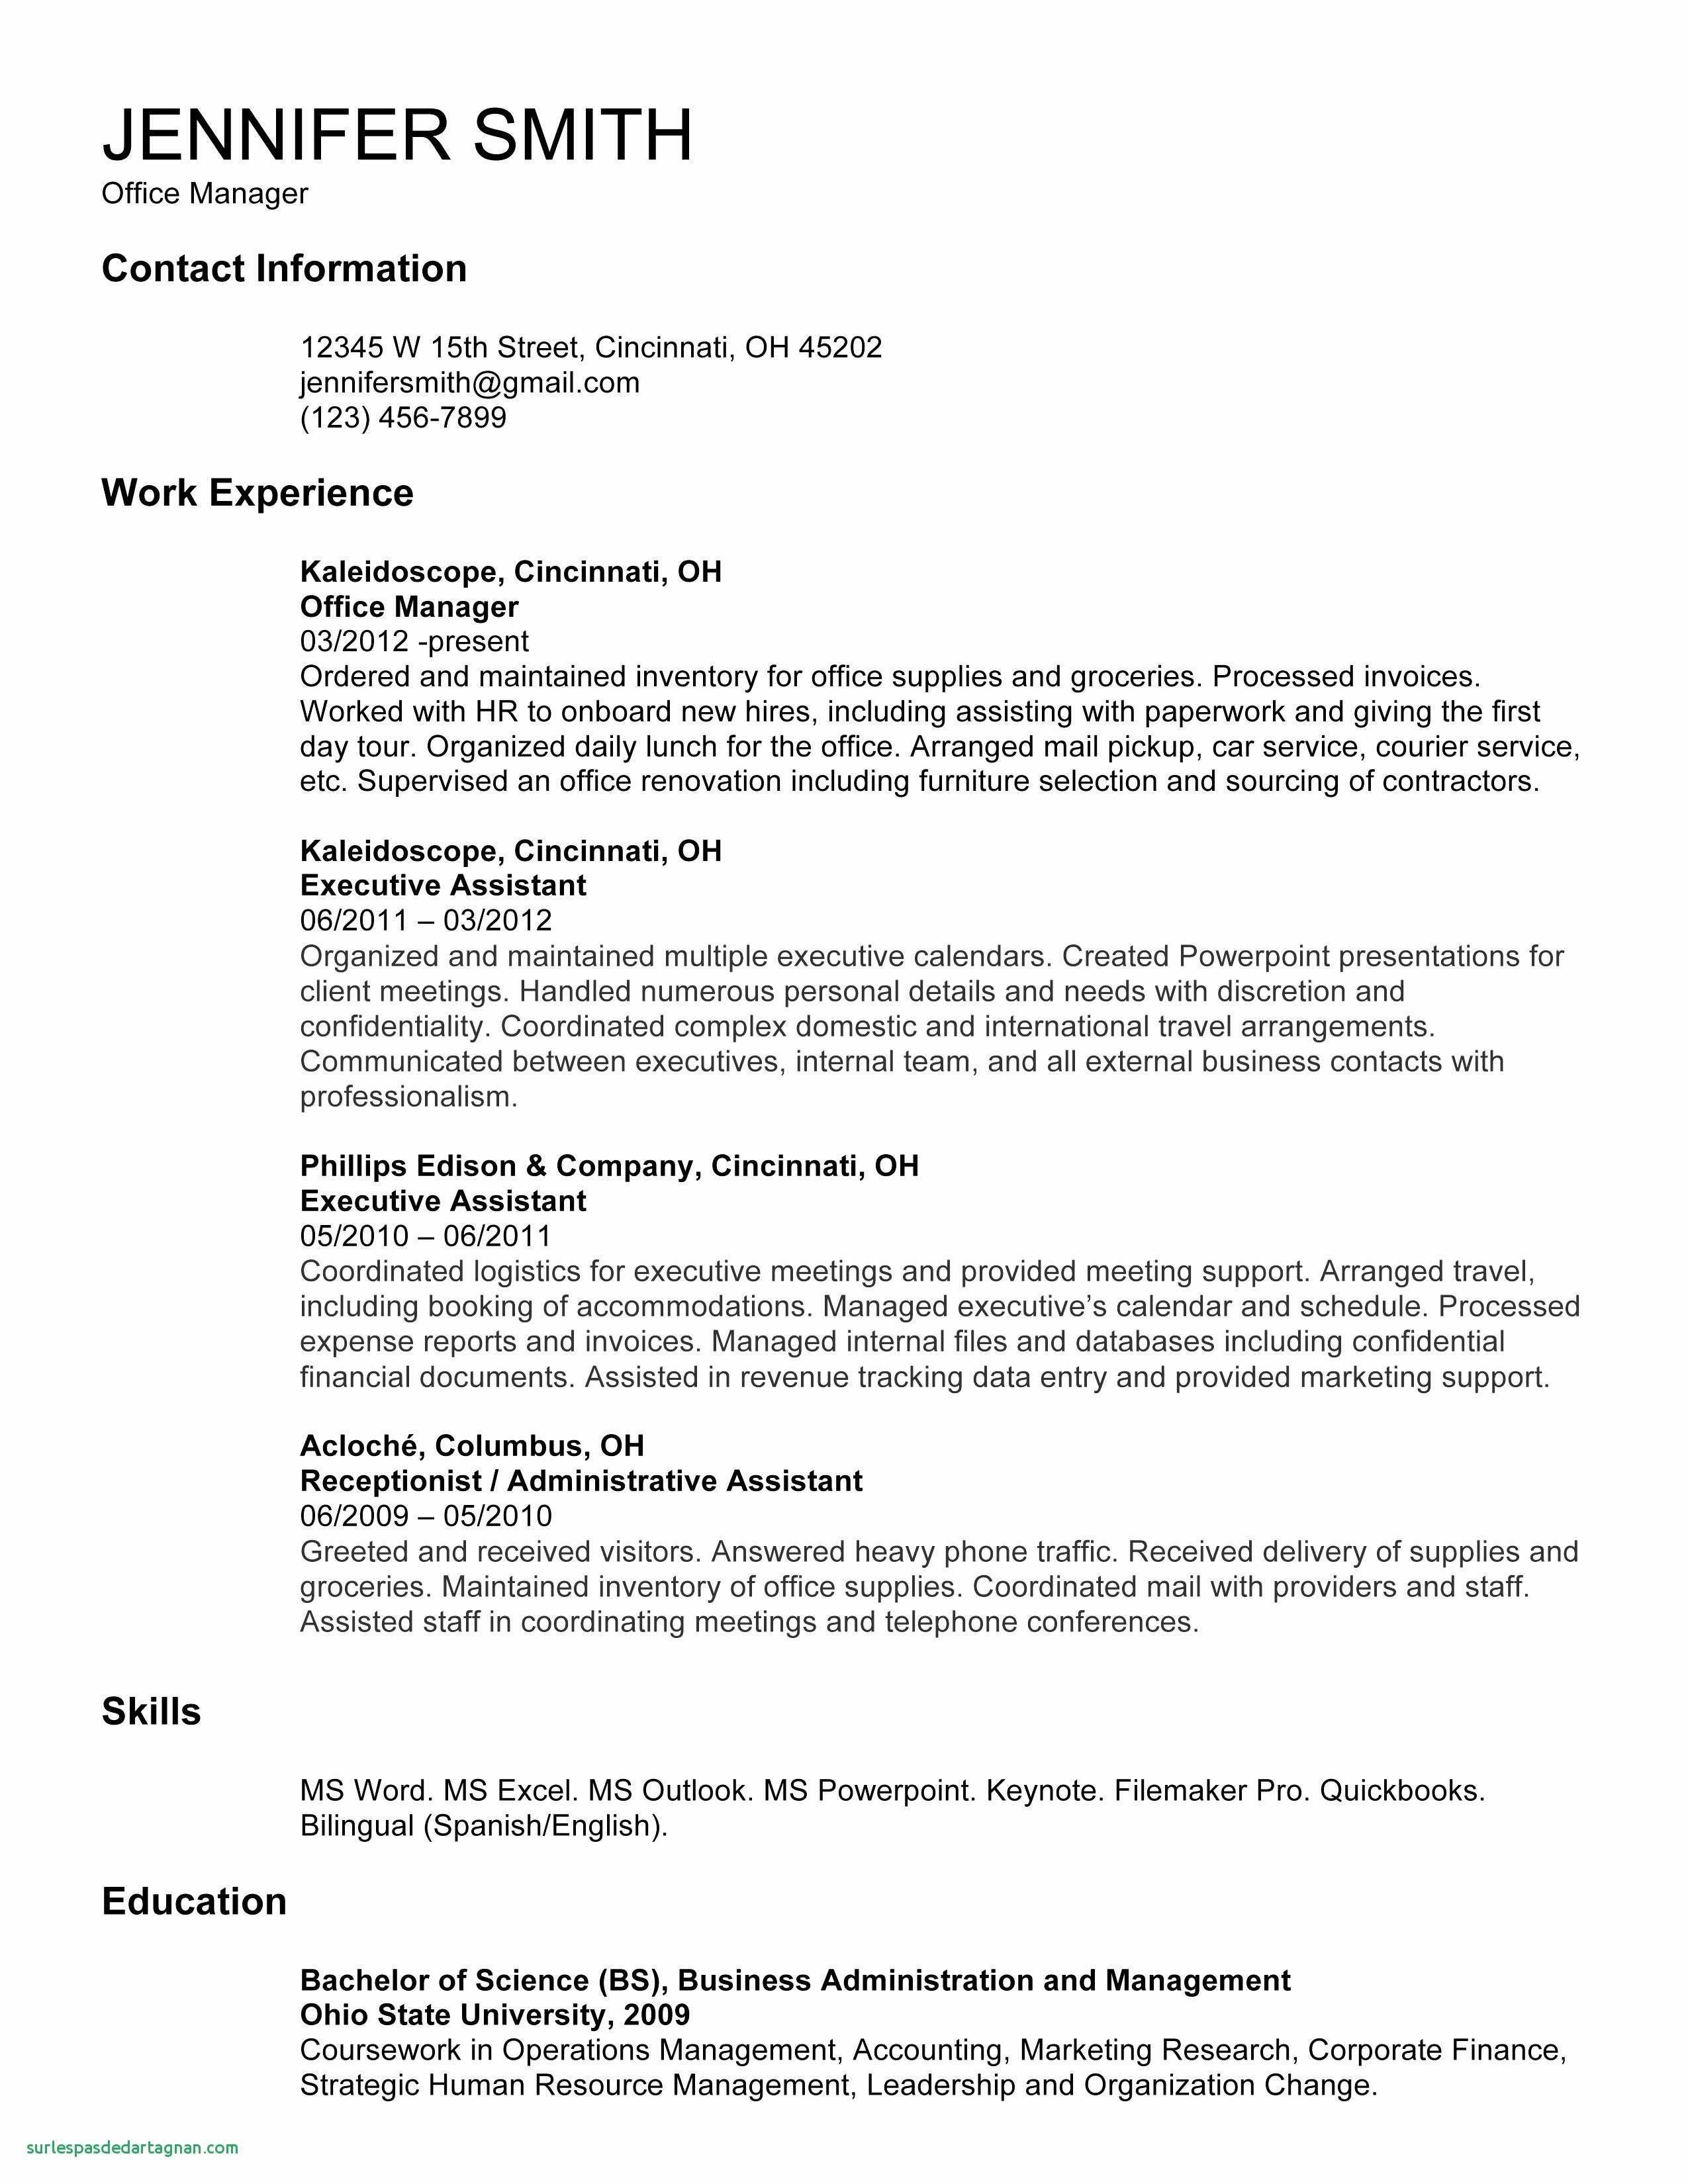 Free Resume Template Word - Resume Template Download Free Unique ¢Ë†Å¡ Resume Template Download